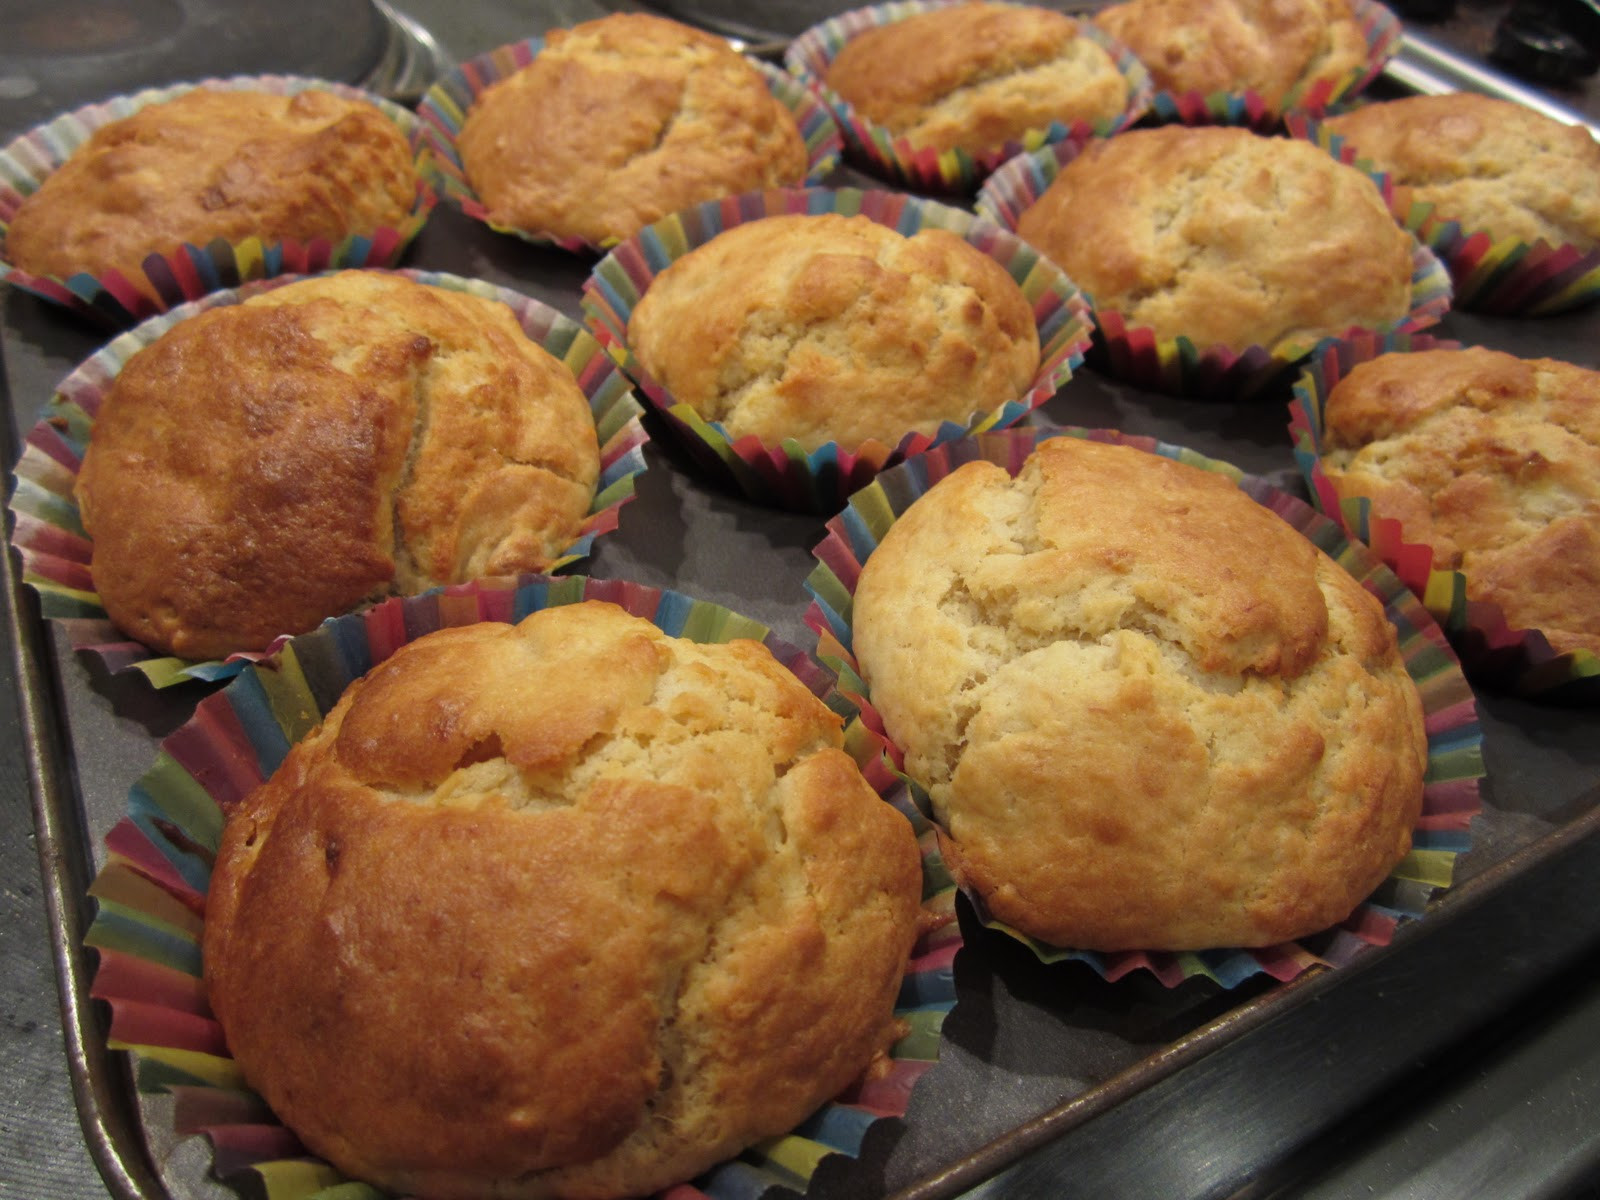 Healthy Banana Muffin Recipes  Healthy Banana Muffins Crafty Weekend Craft projects